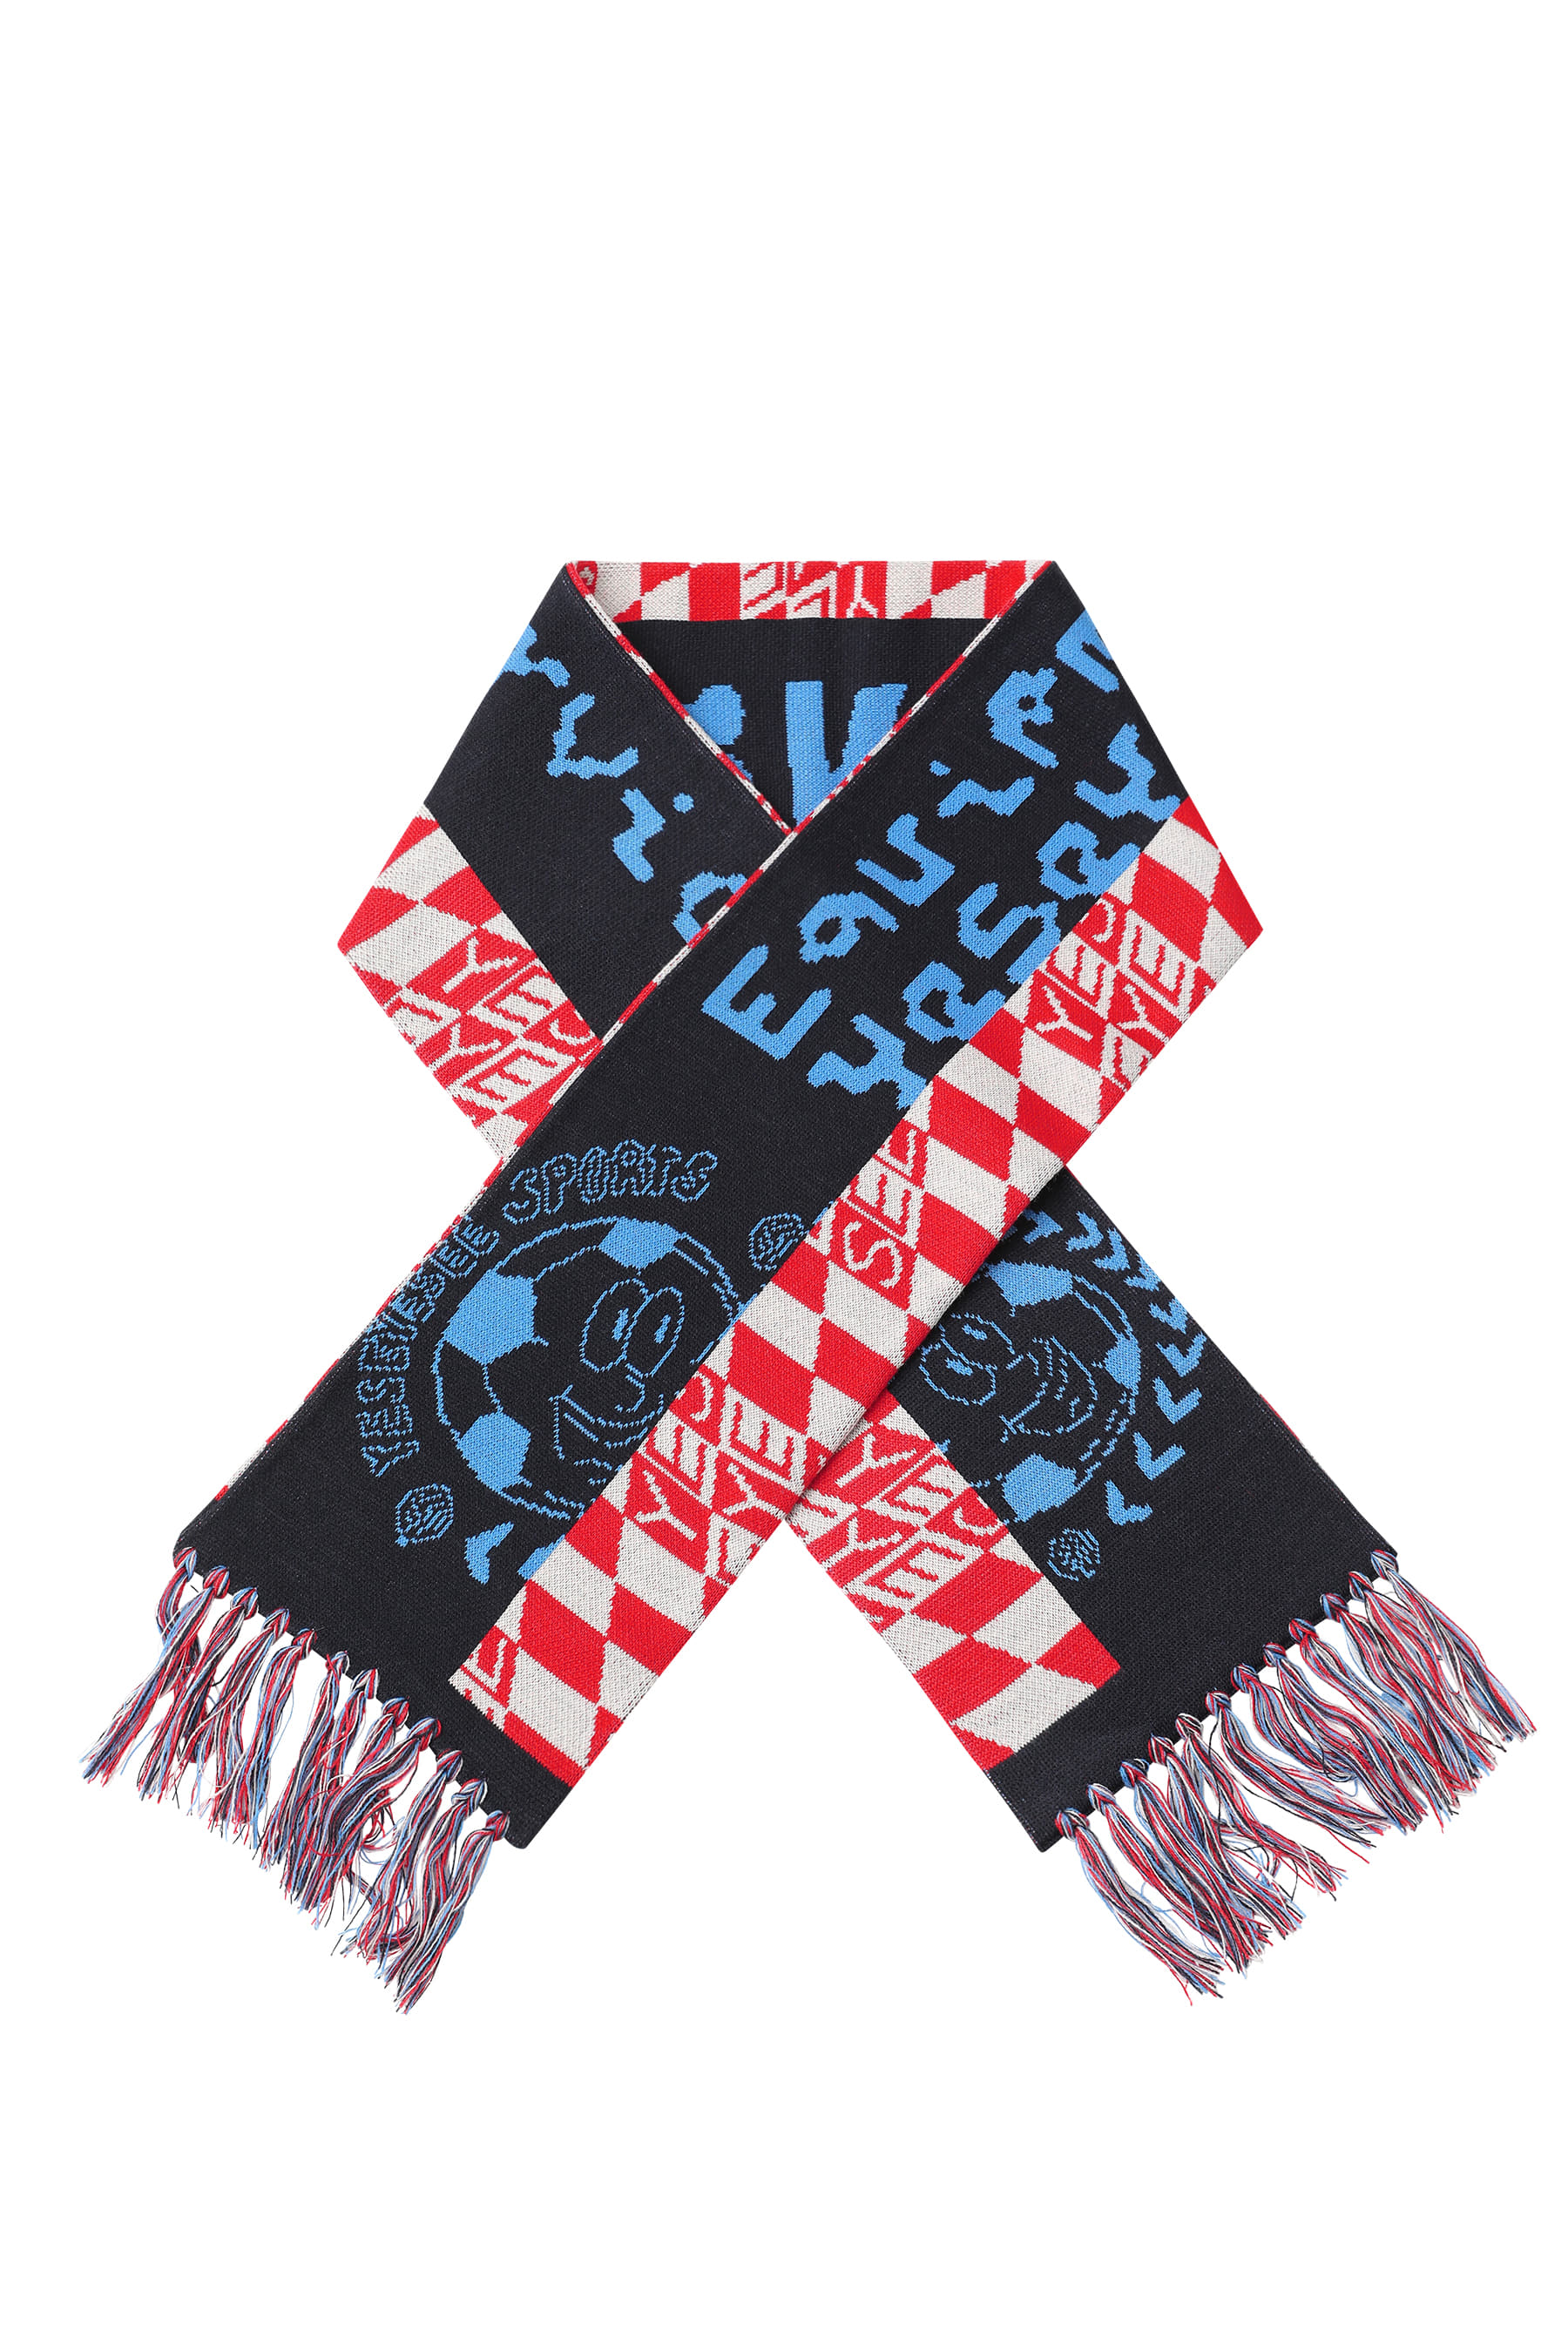 Y.E.S Football Club Scarf Navy